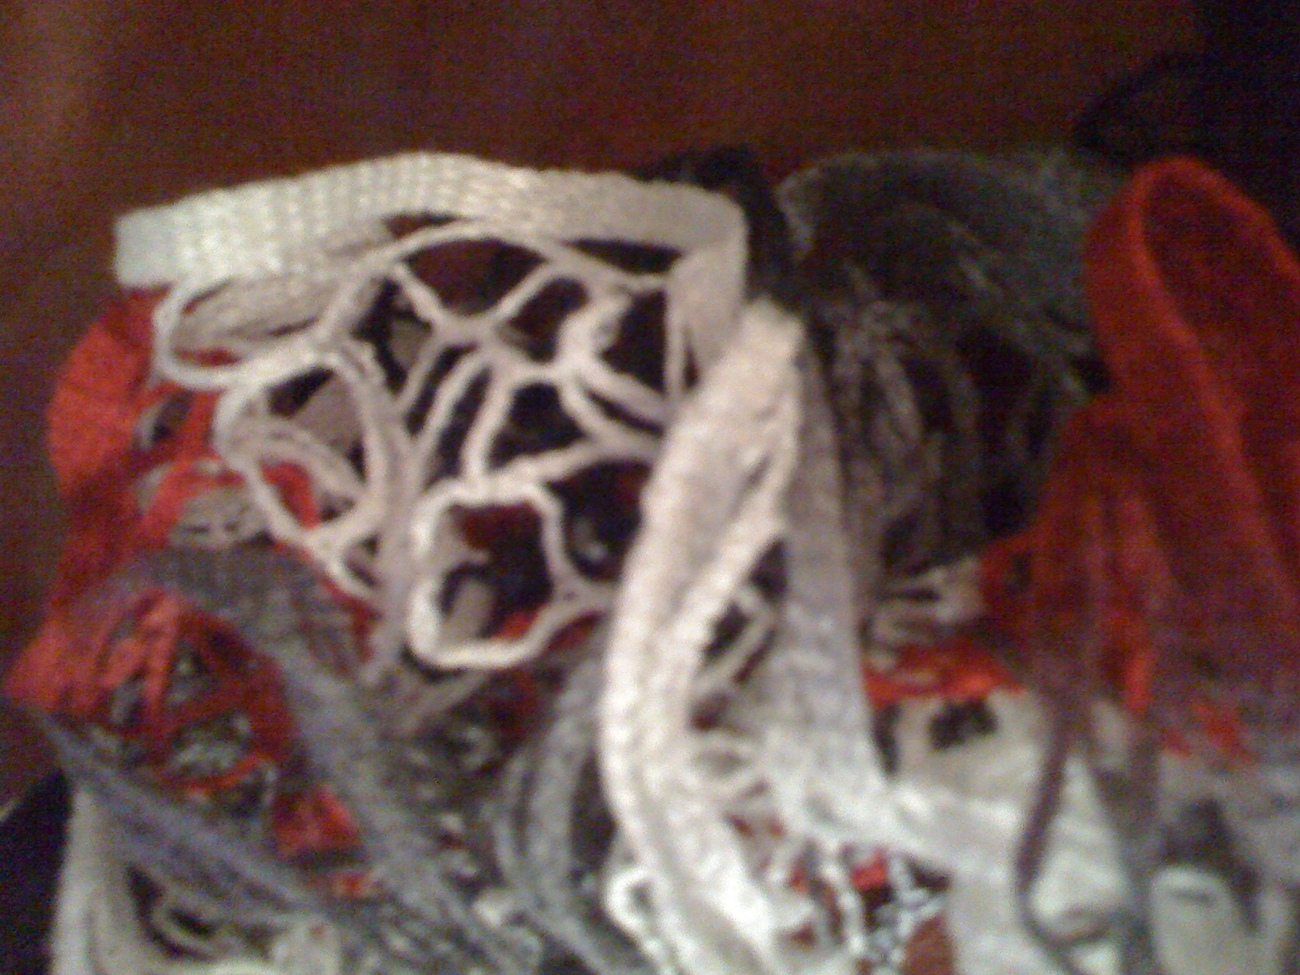 Exquisite hand knit frilly red, white, & black festive fashion scarf